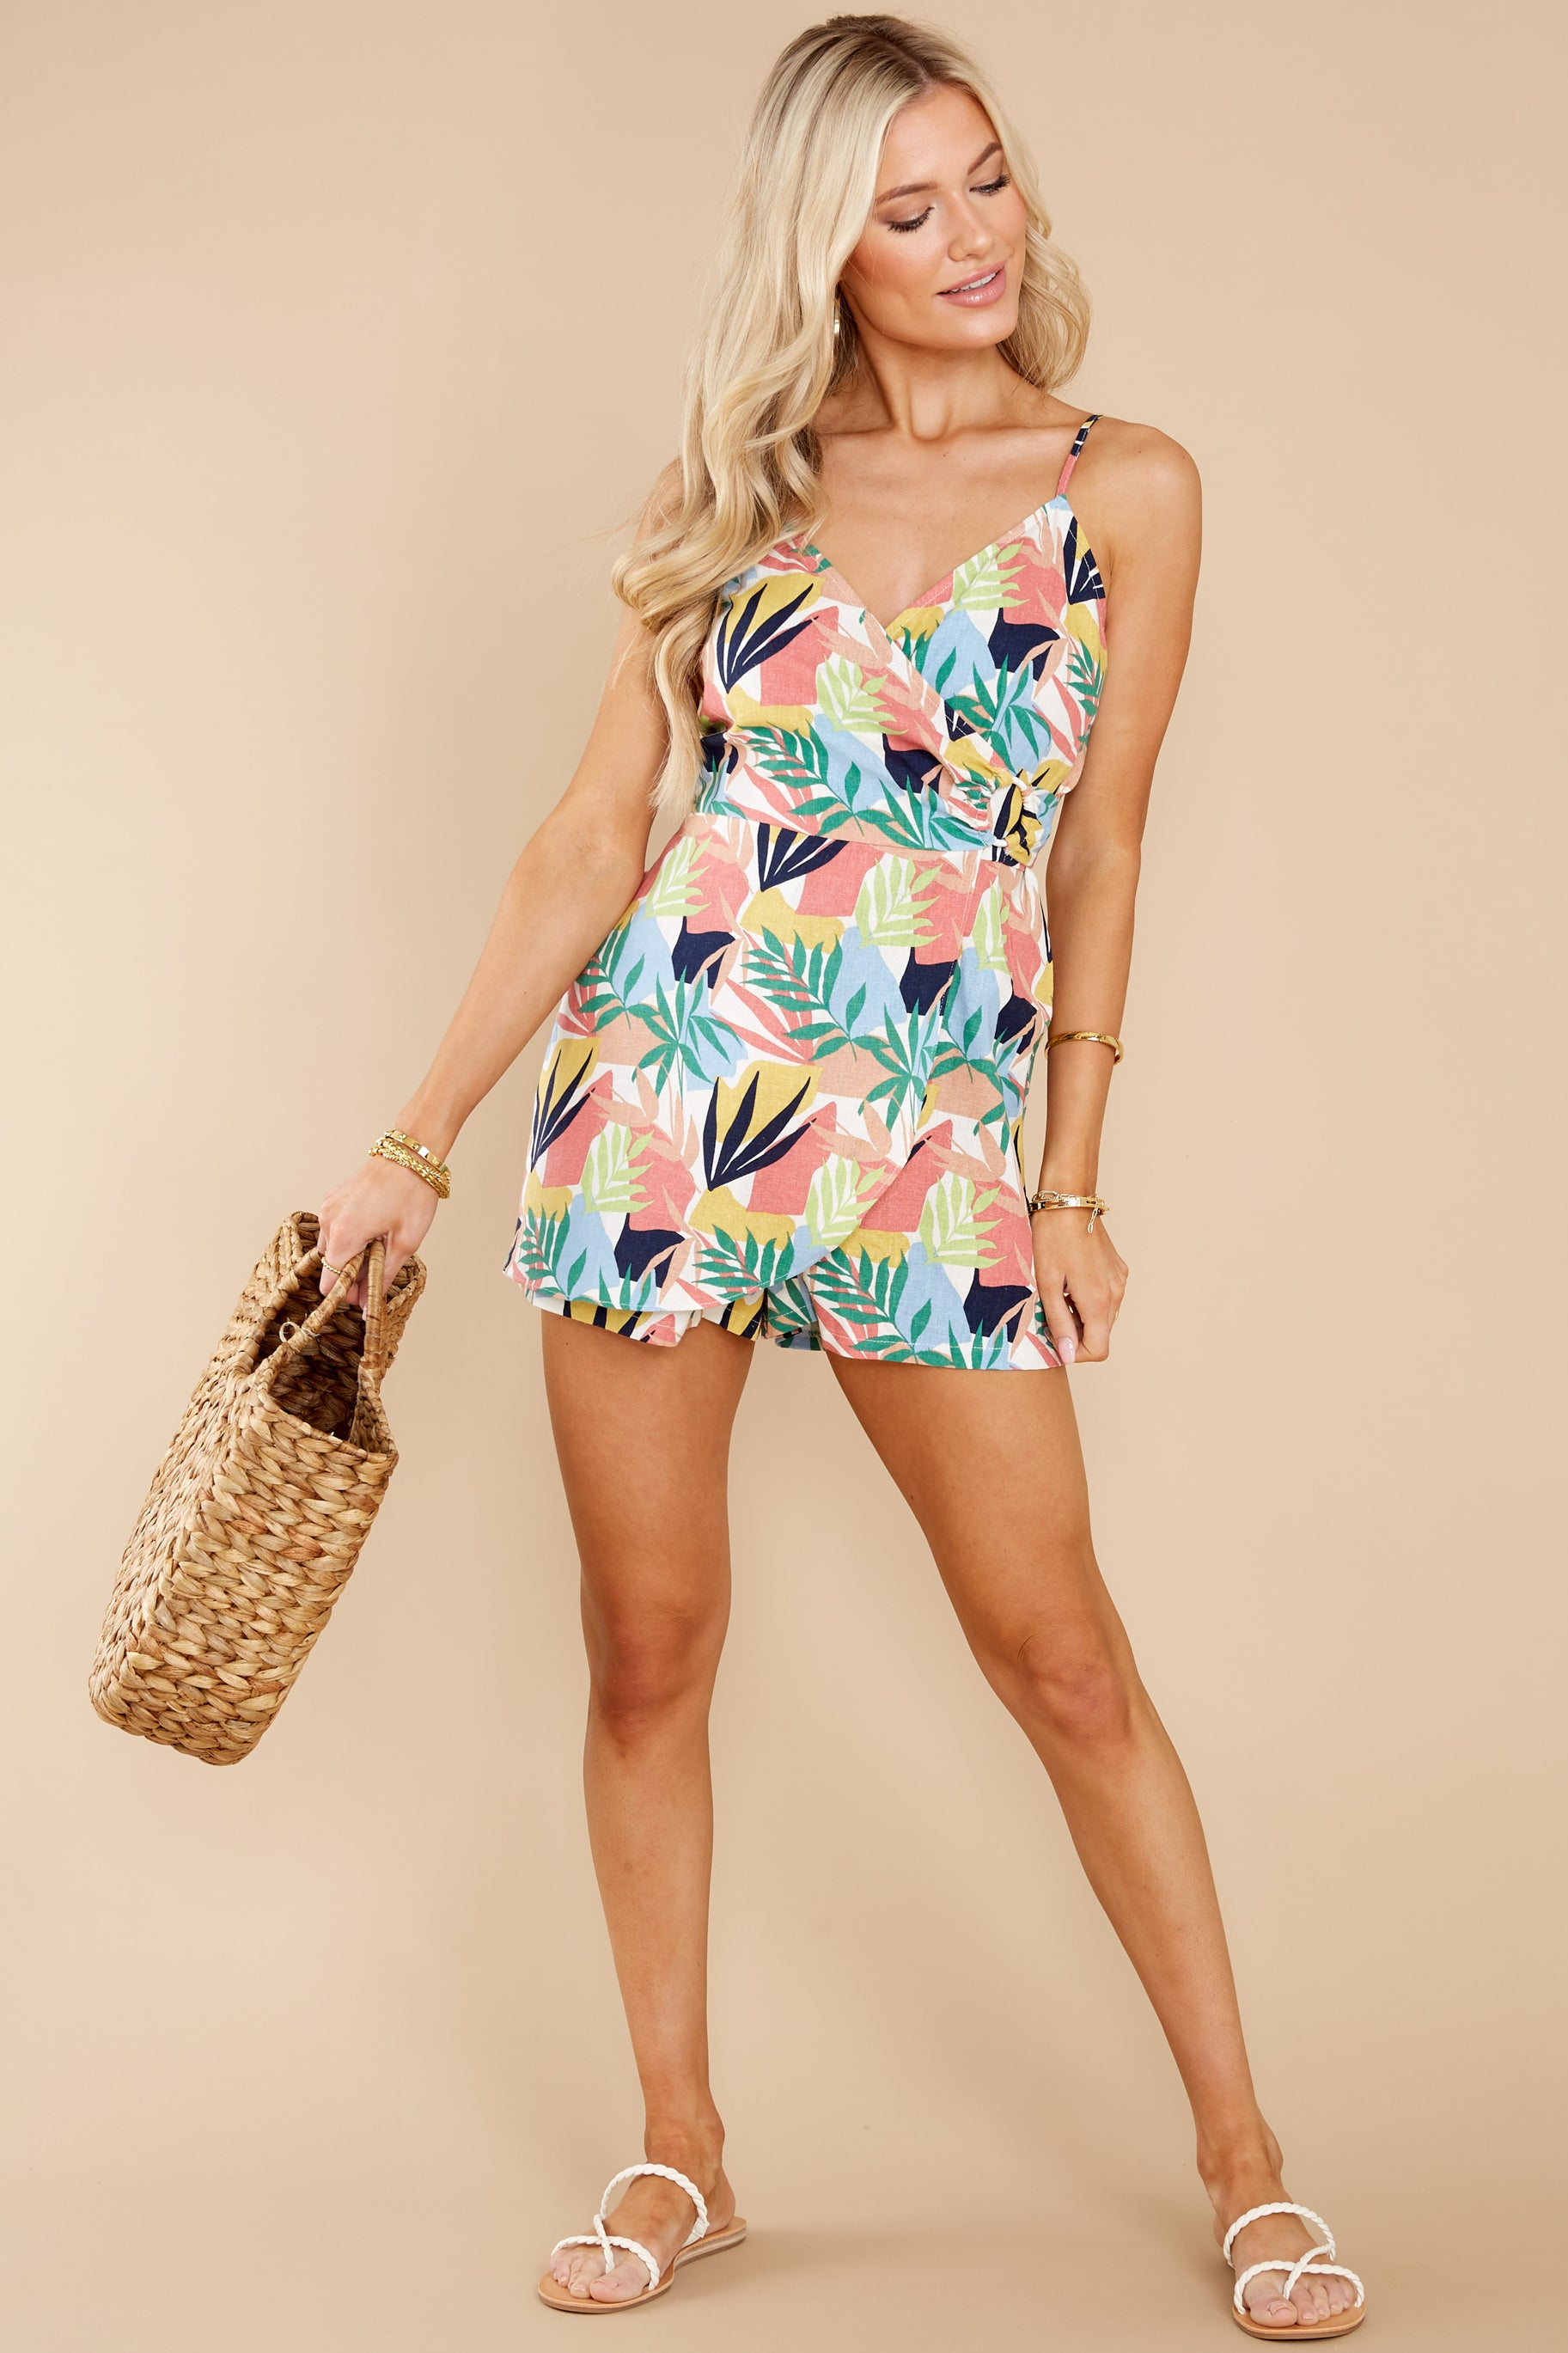 3 Gone For The Weekend White Multi Print Romper at reddress.com